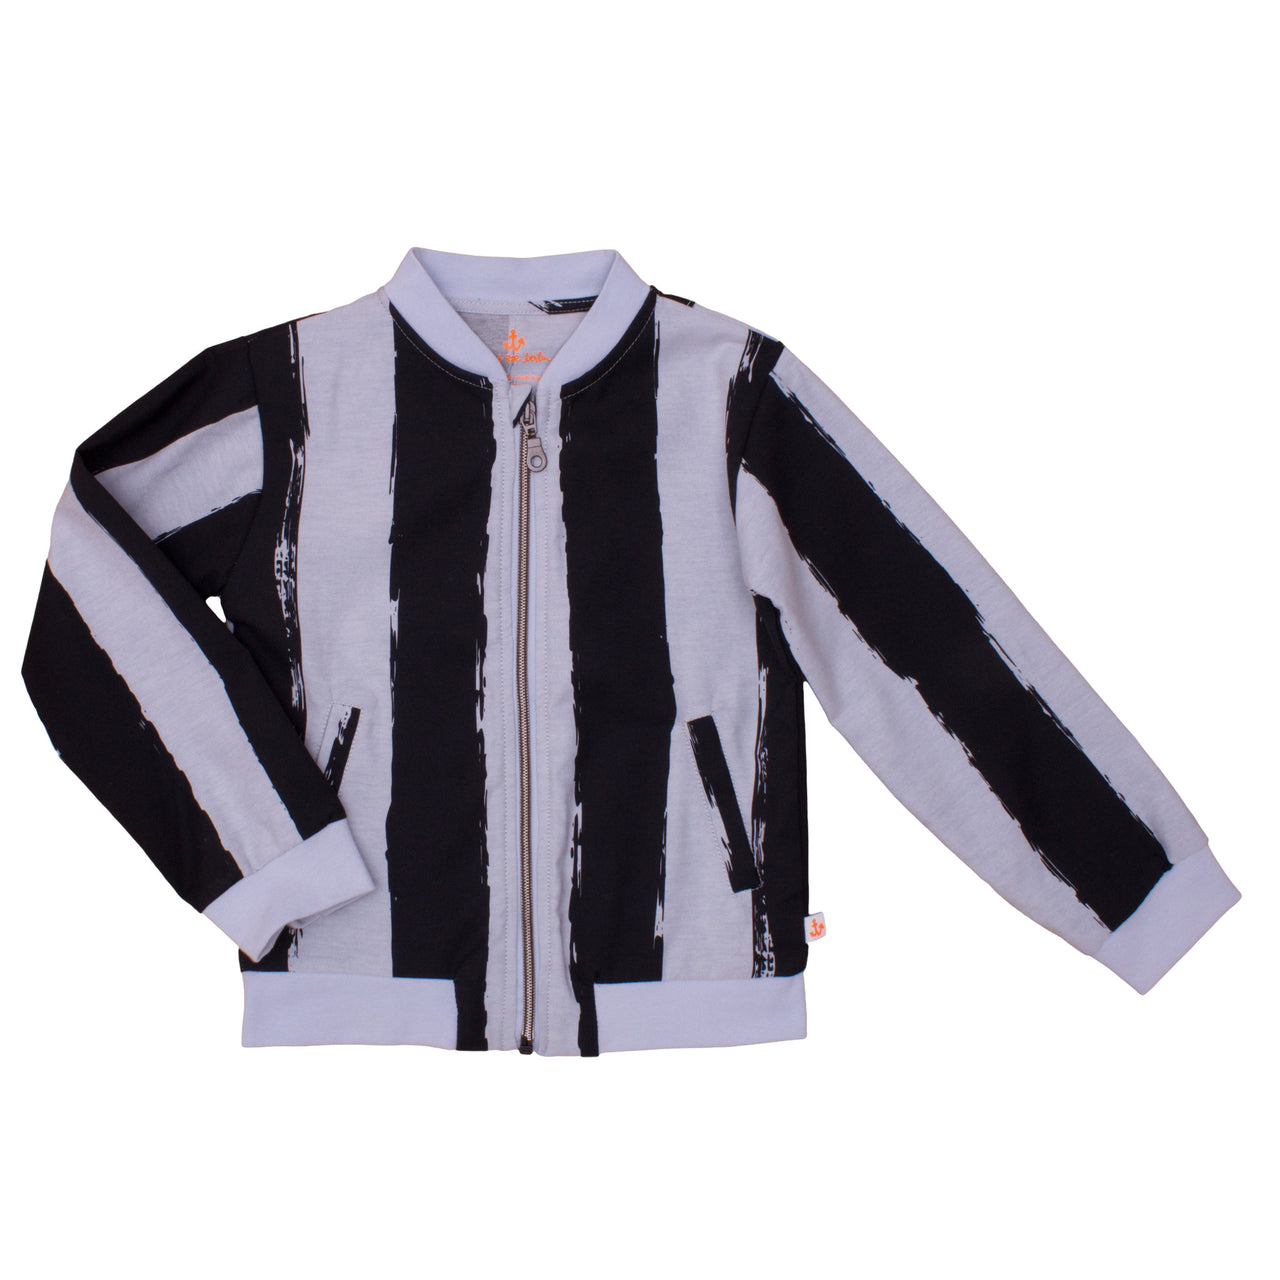 Bomber Jacket, Black Stripes